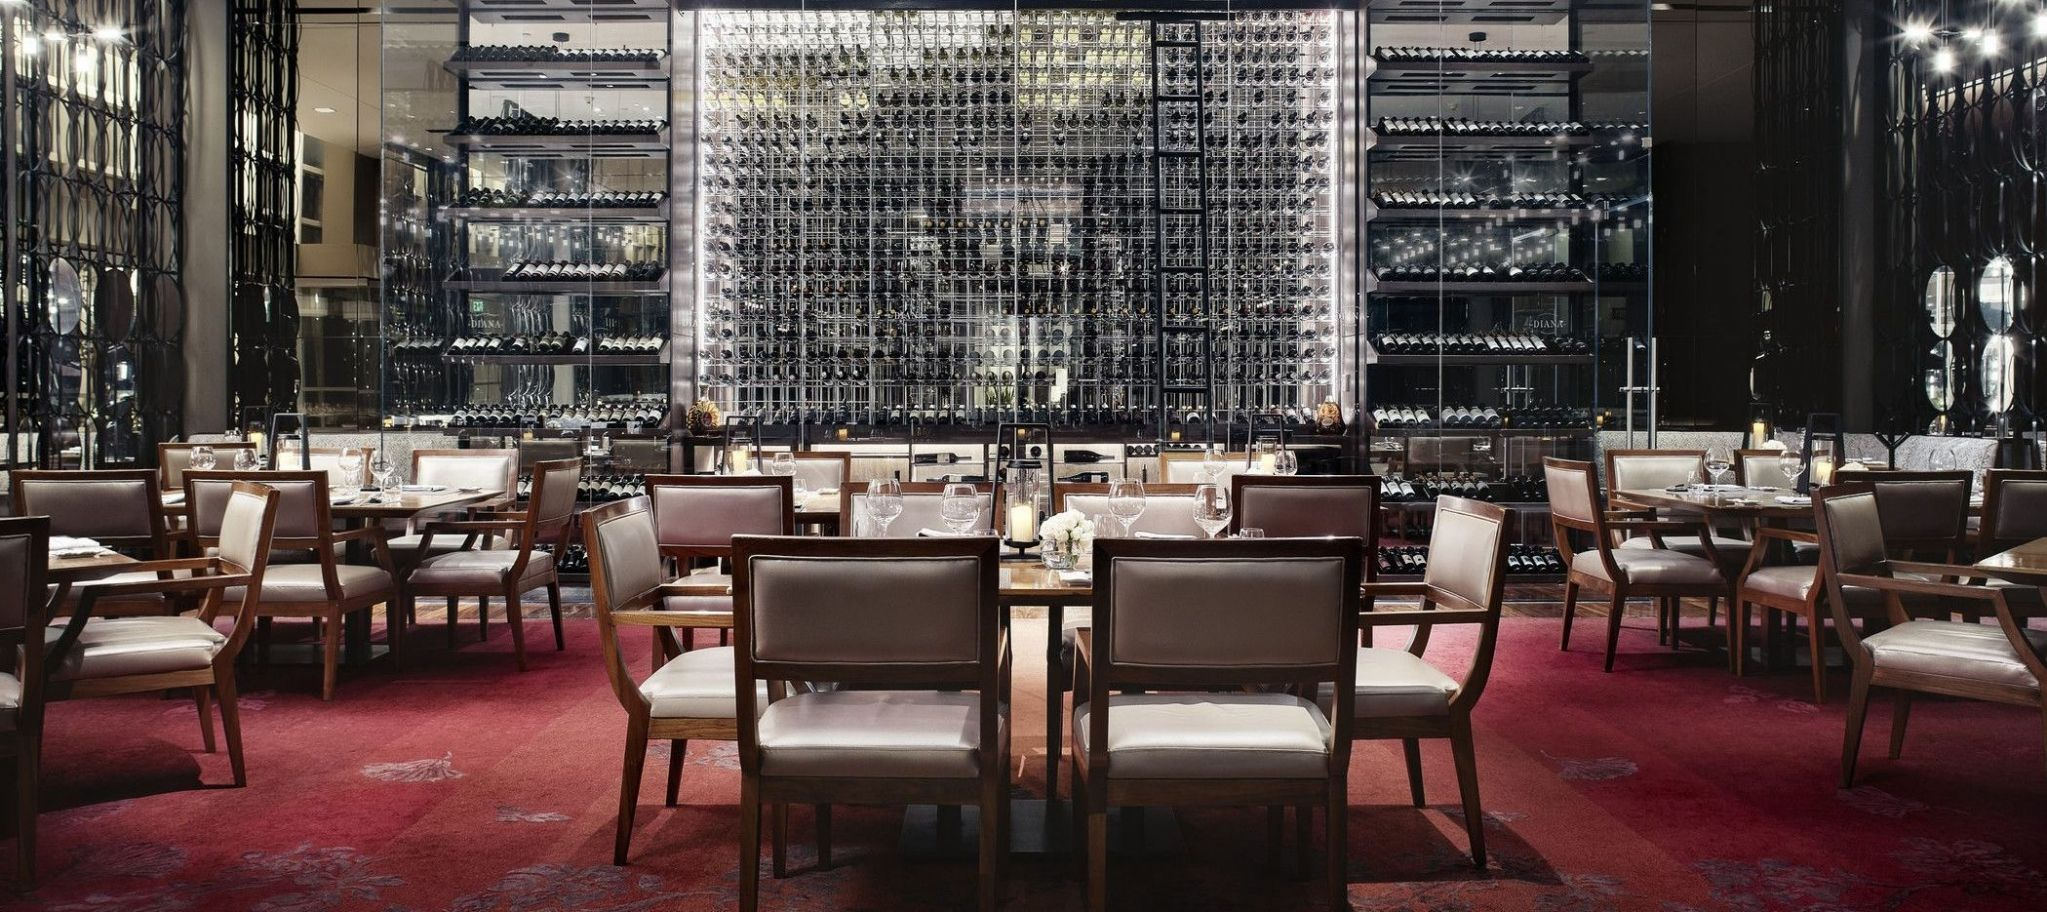 The St Regis Mexico City - Diana Restaurant